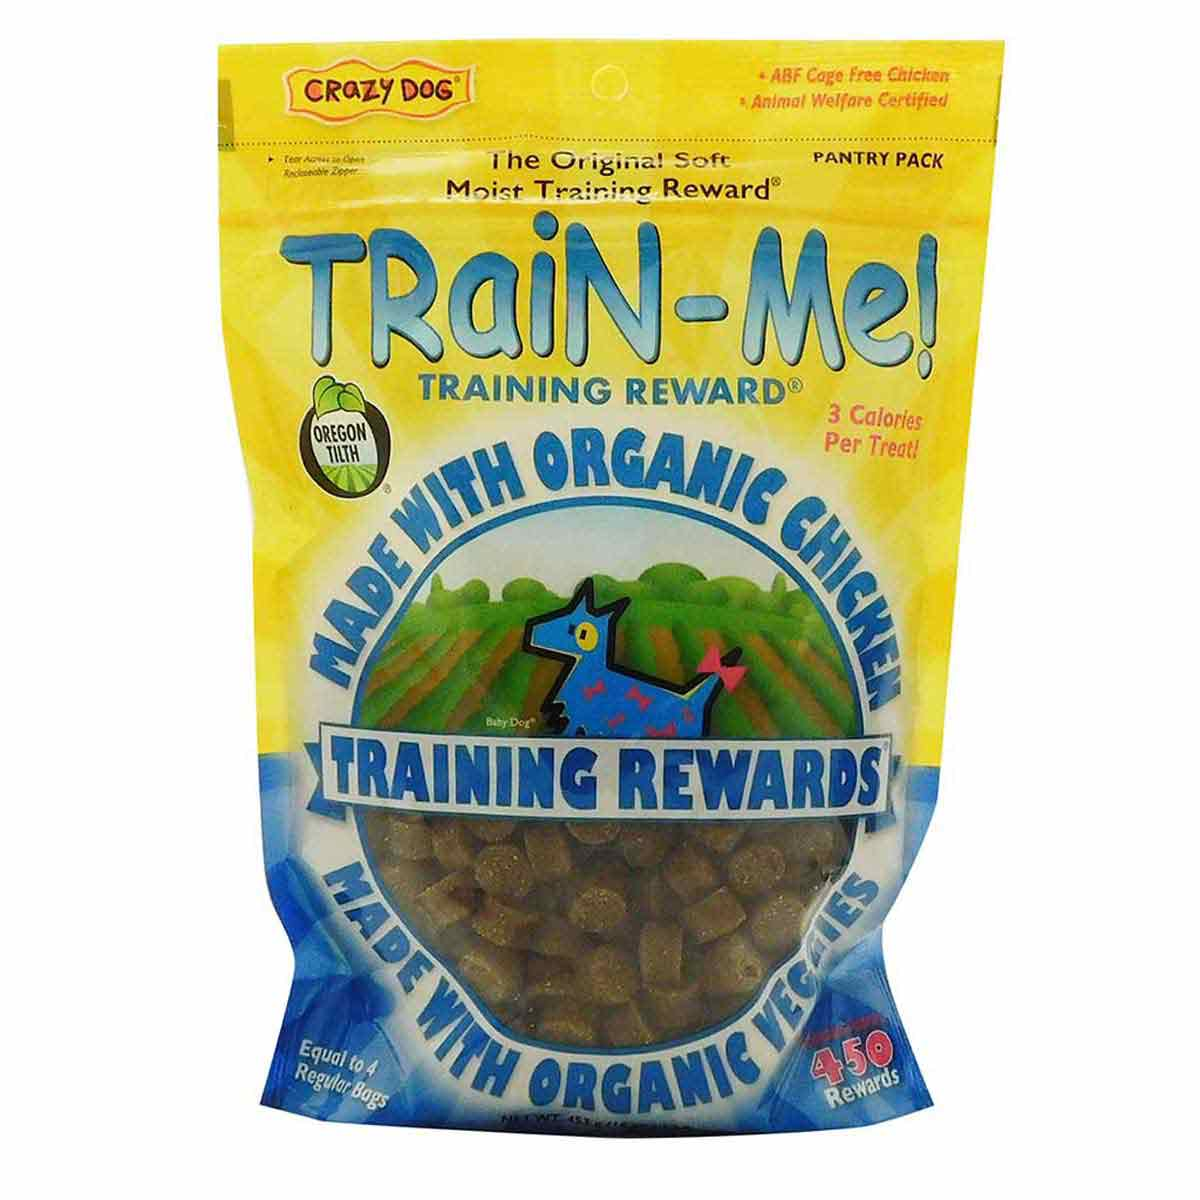 1 lb Crazy Dog Organic Train-Me! Treats - Chicken